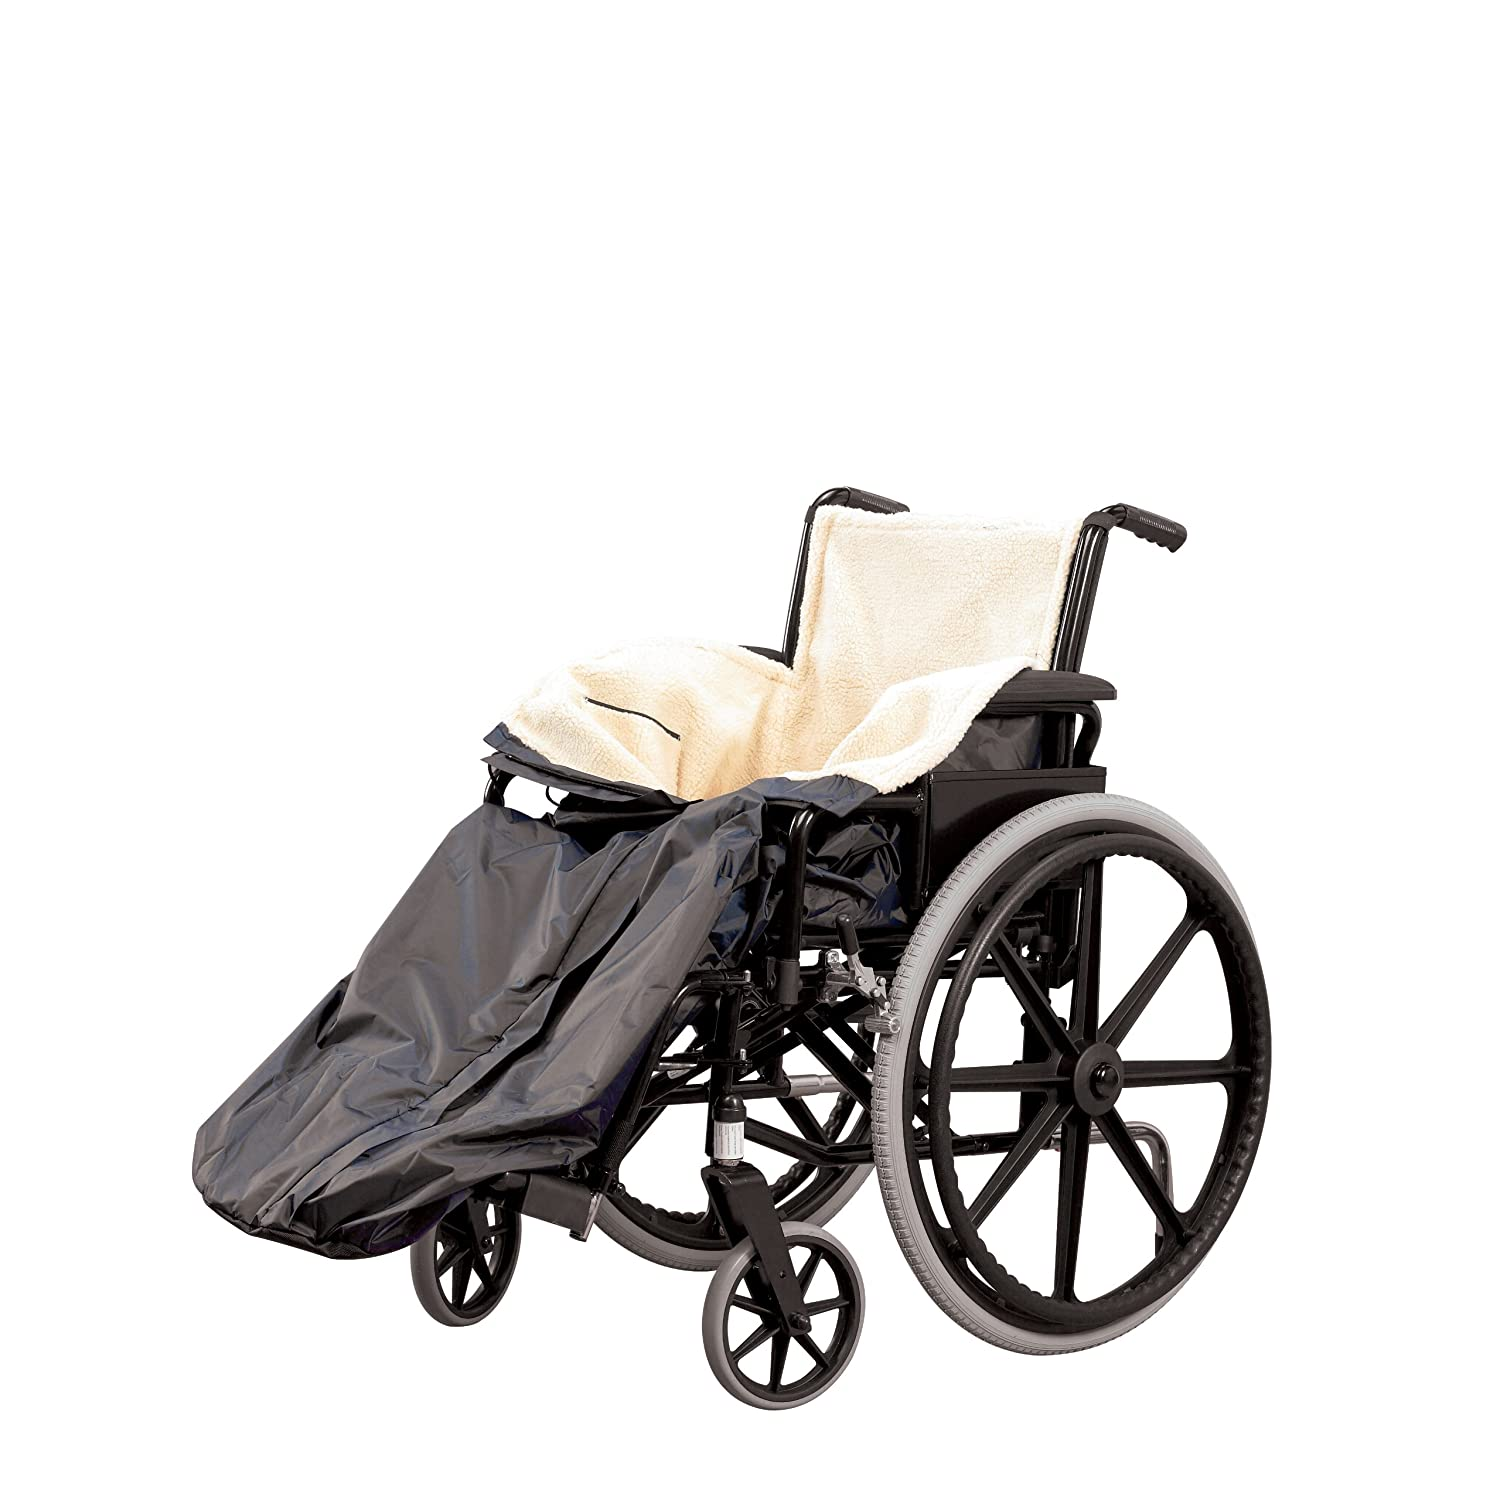 Homecraft Wheelchair Cosy, Standard Size, Wheelchair Blanket for Warmth and Comfort, Wheelchair Accessory, Fleece Lined Blanket with Ring Pulled Zipper, Fits Nearly All Manual Wheelchairs Patterson Medical 091119080